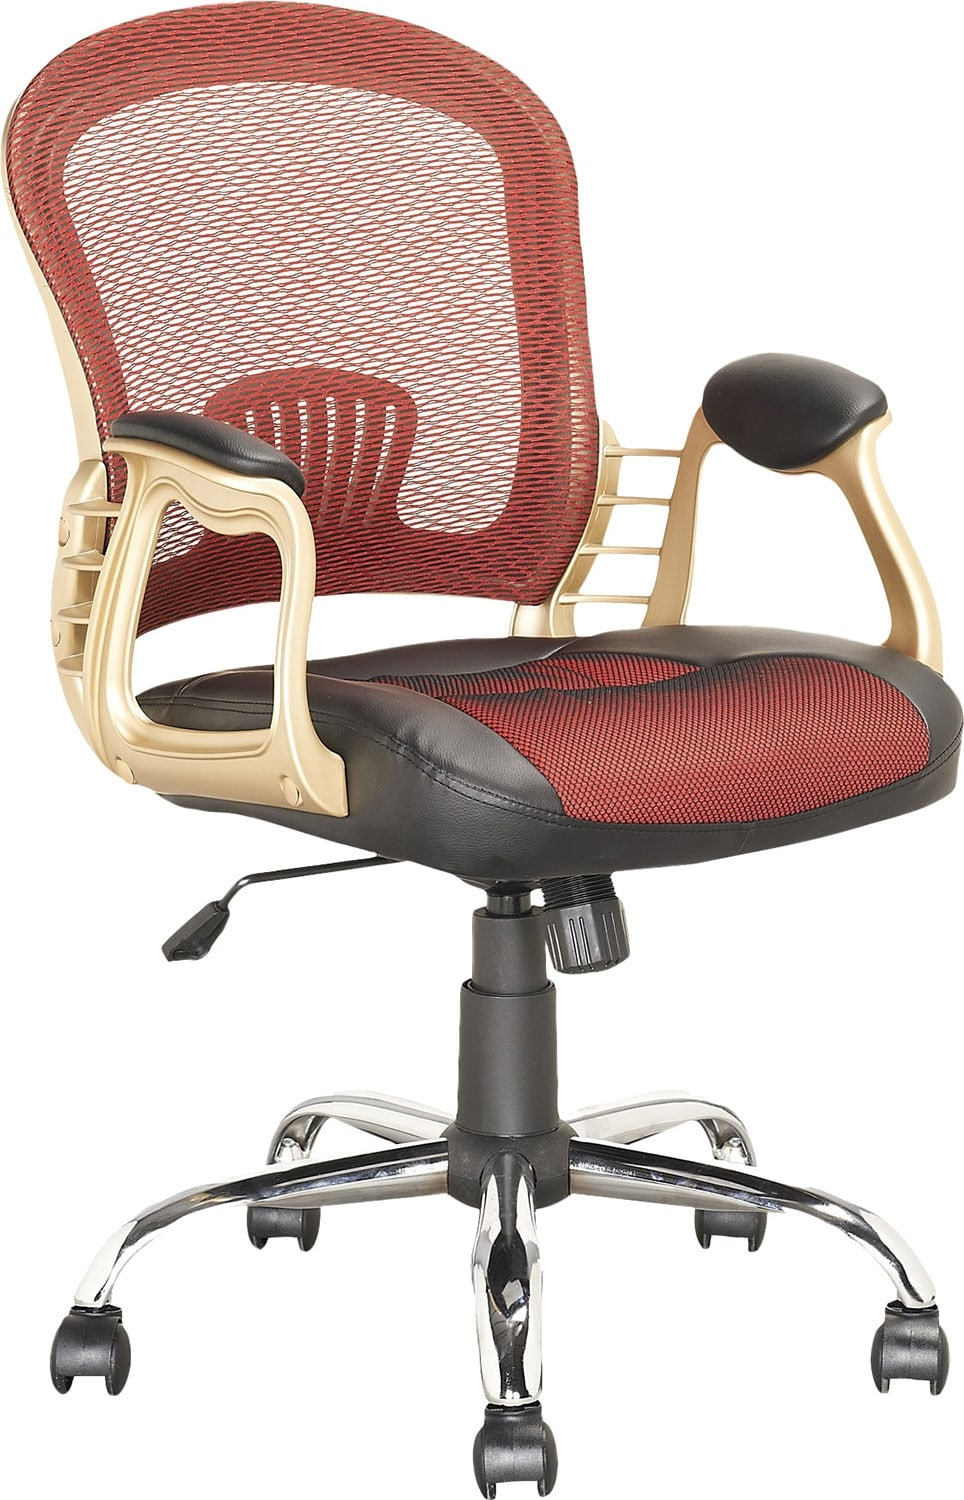 Home Office Furniture - Jacksonville Leatherette and Mesh Executive Office Chair